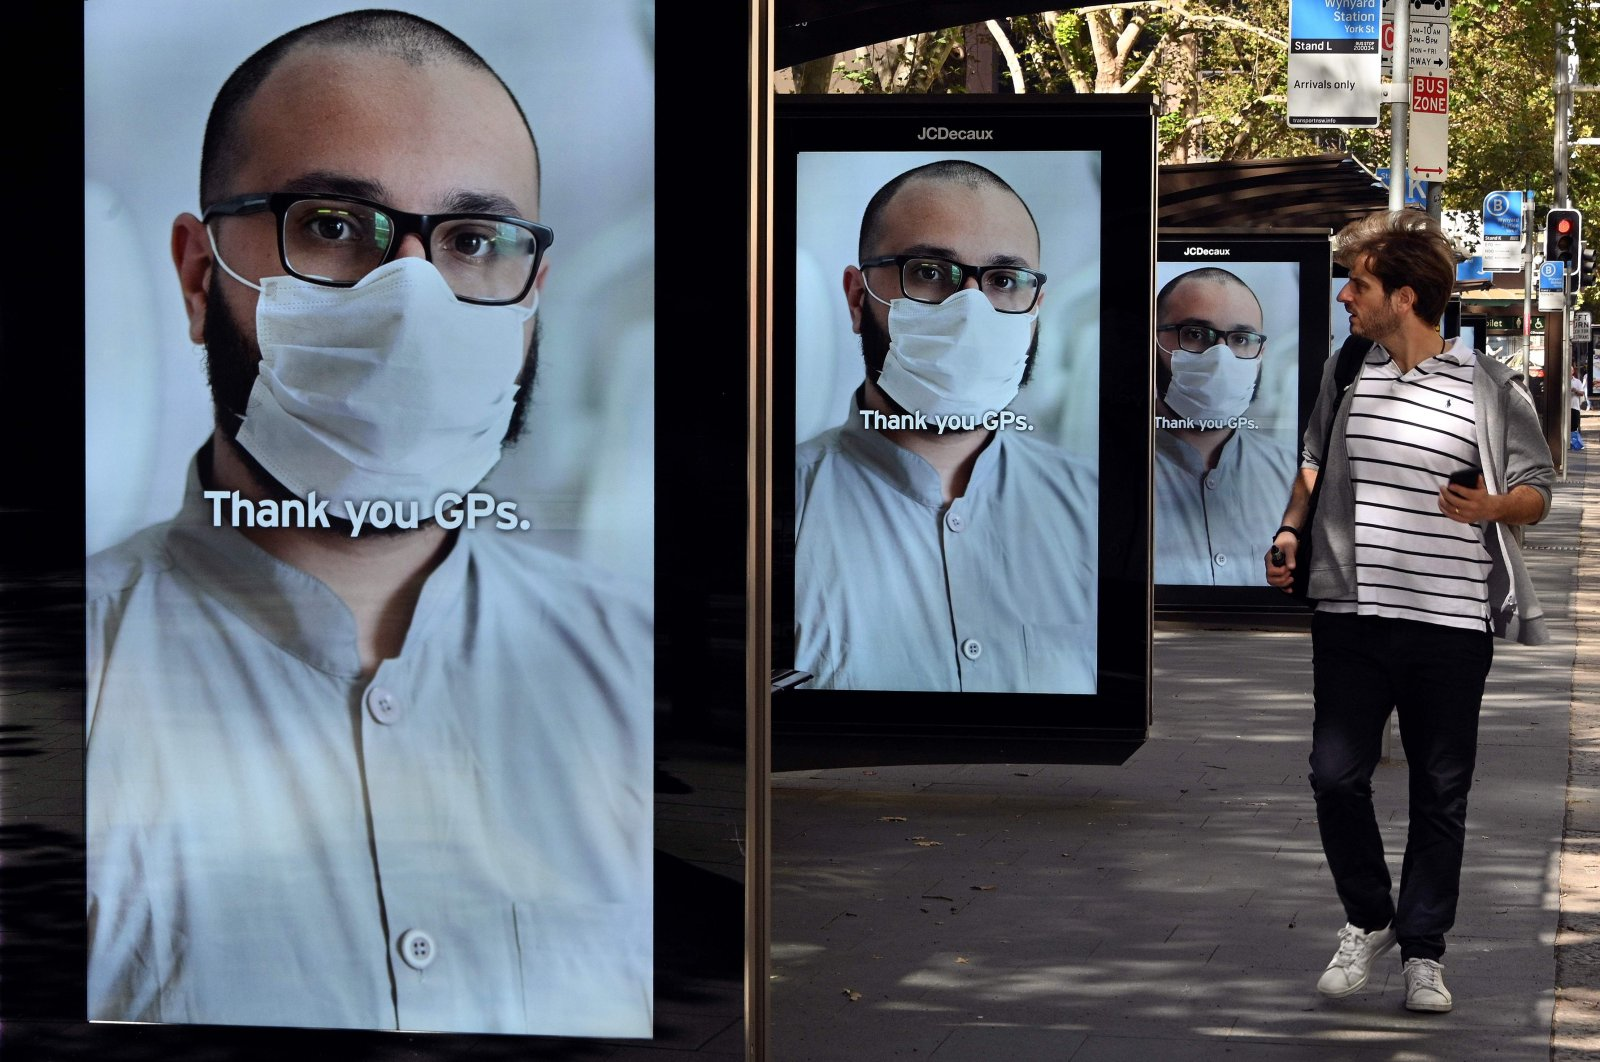 A man walks past bus stop advertising boards displaying thank you messages to health workers in response to the COVID-19 coronavirus outbreak, in Sydney on April 15, 2020. (AFP Photo)